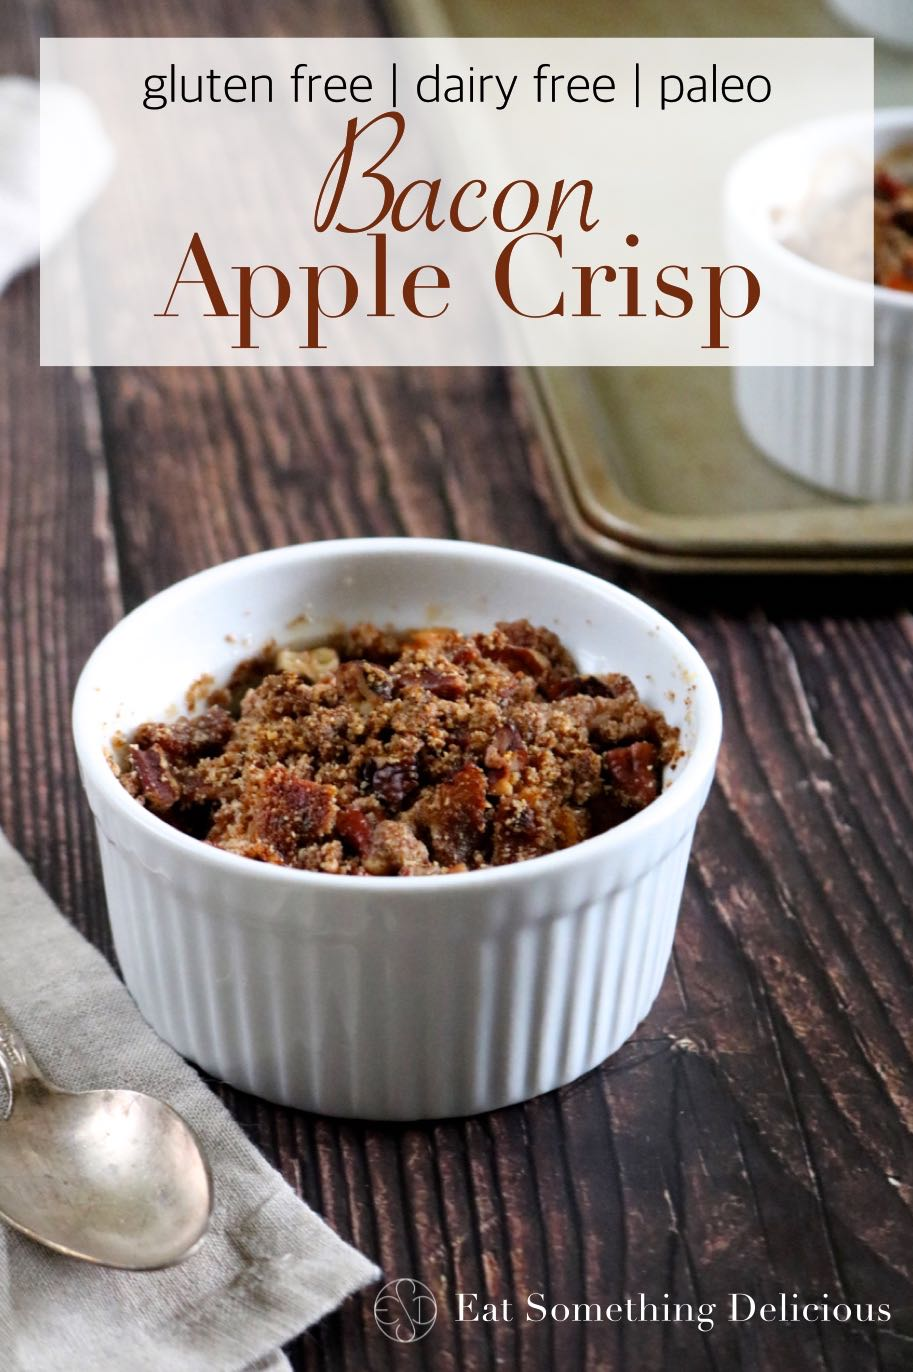 Bacon Apple Crisp   Spiced apples with a crunchy topping, including extra crispy bacon, served in their own individual ramekins. Gluten free, dairy free, and paleo friendly.   eatsomethingdelicious.com